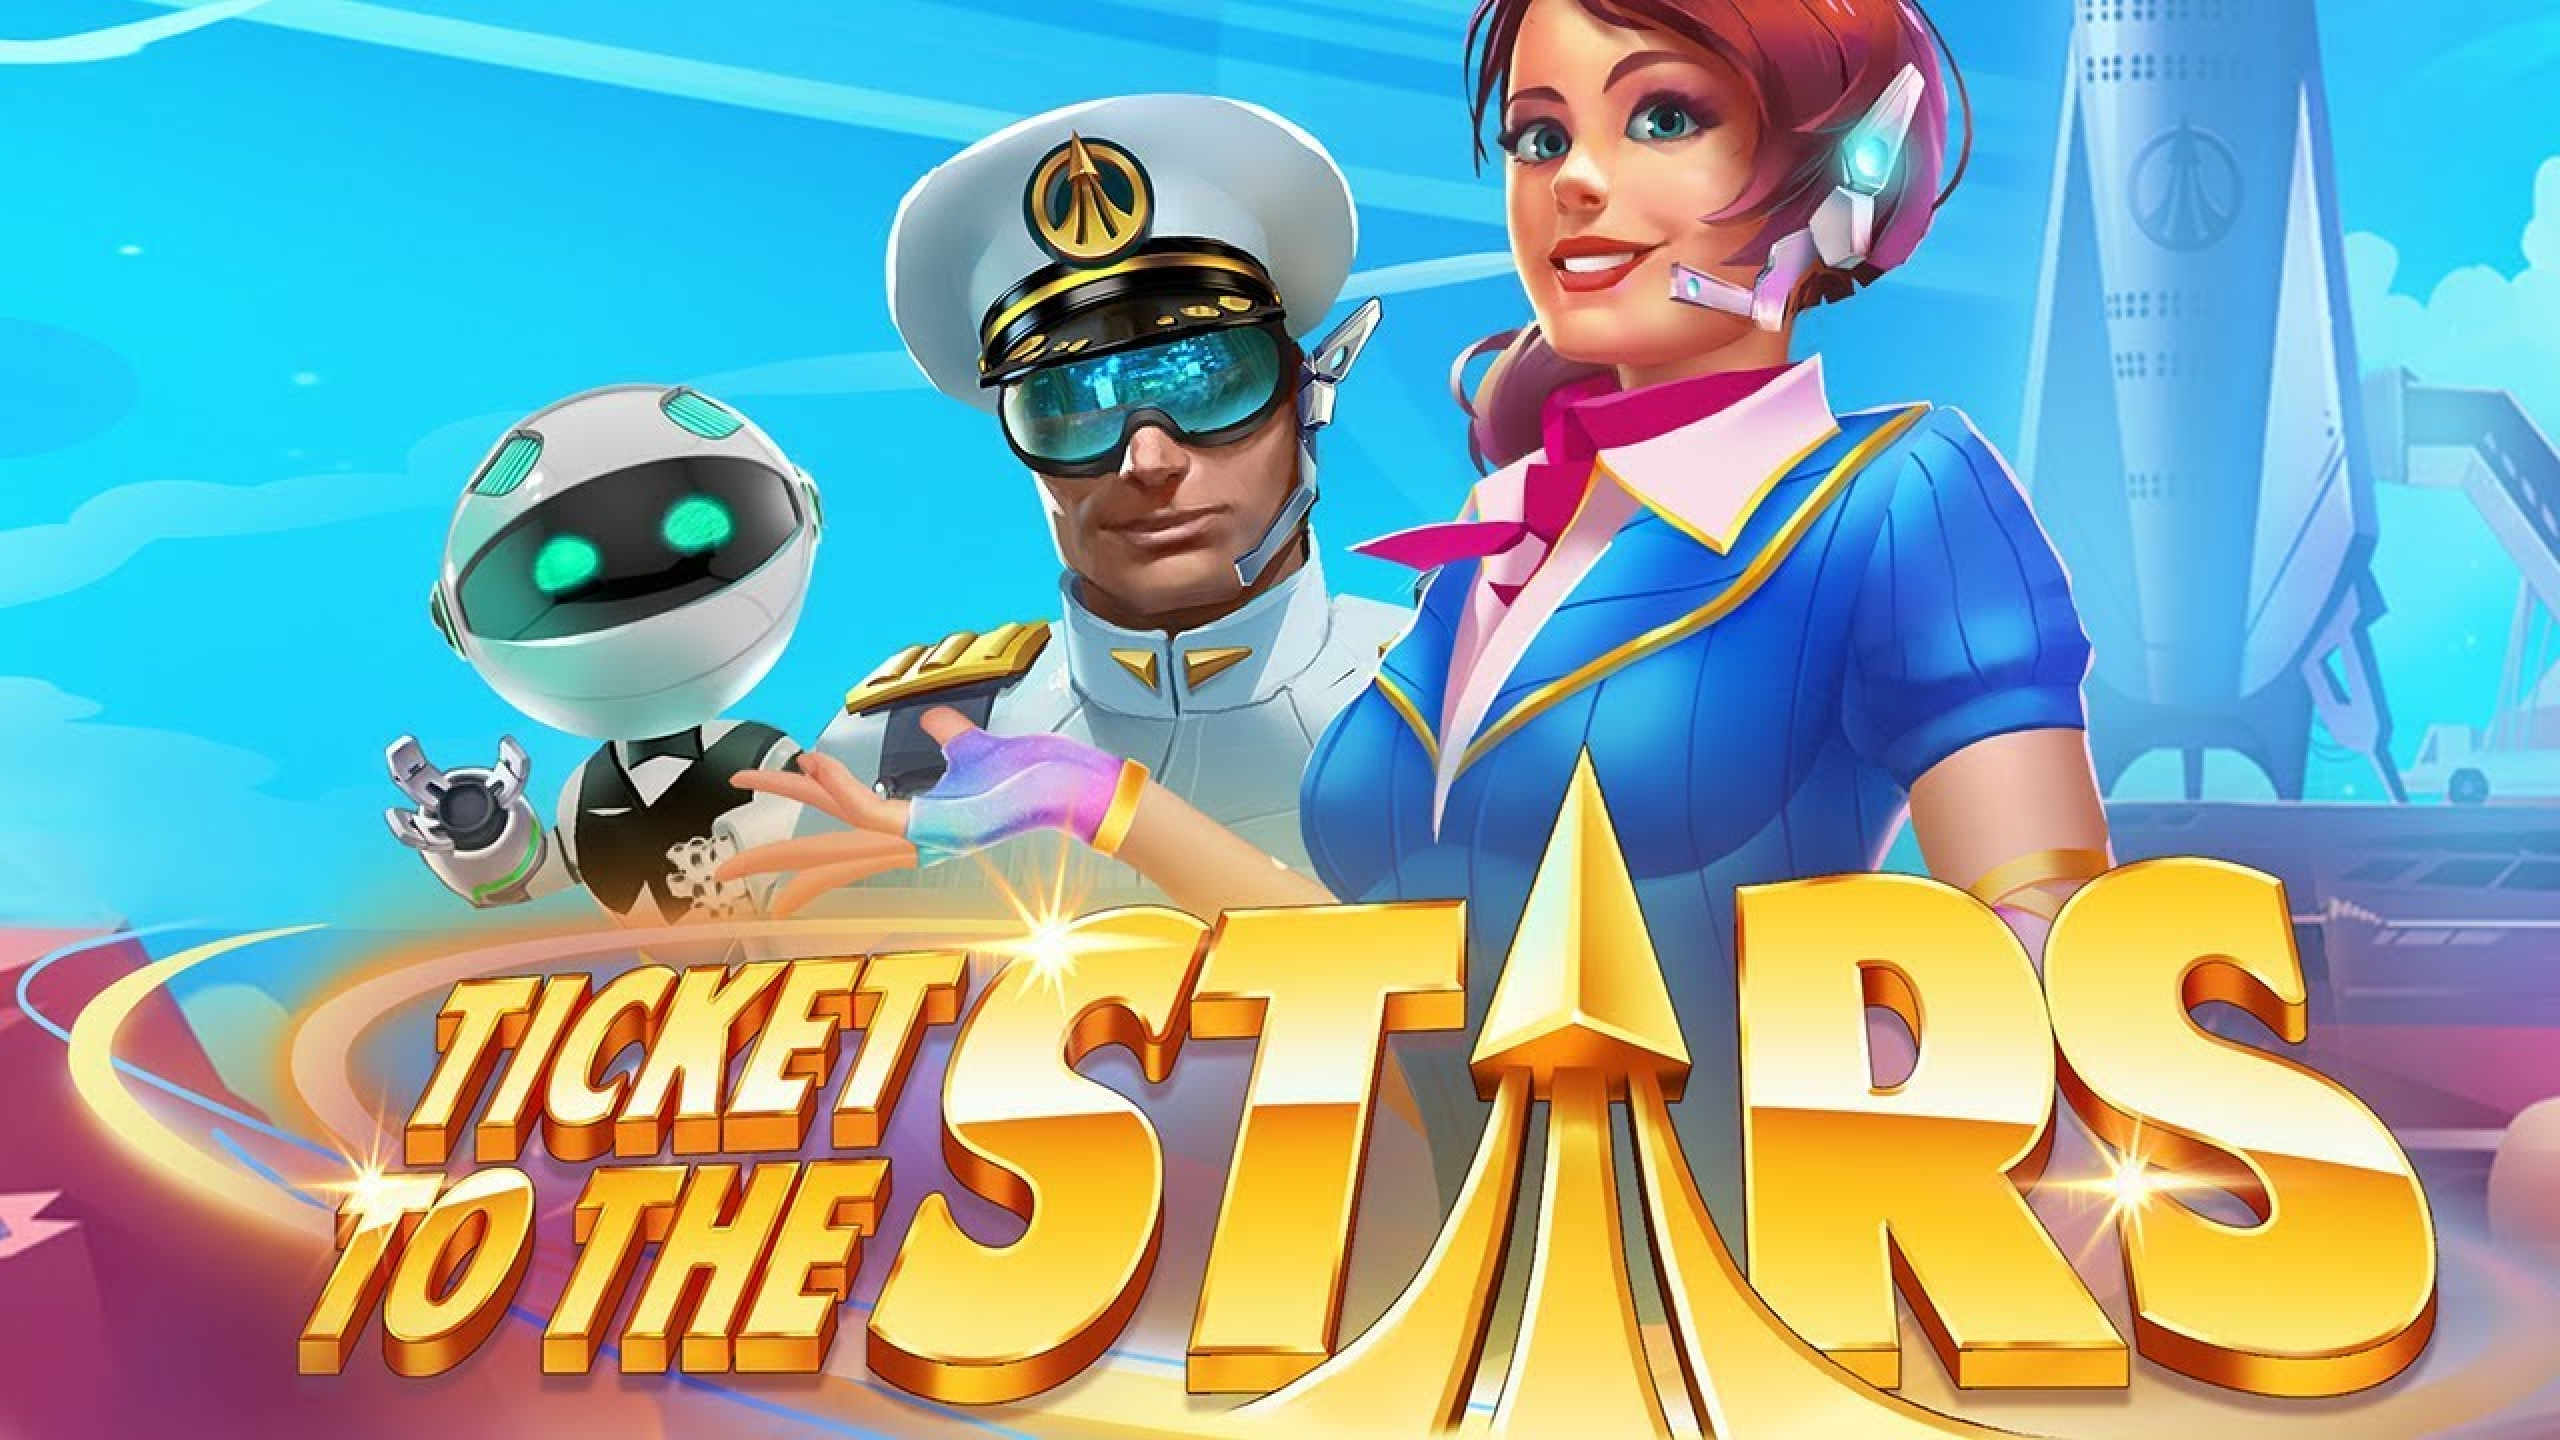 The Ticket to the Stars Online Slot Demo Game by Quickspin